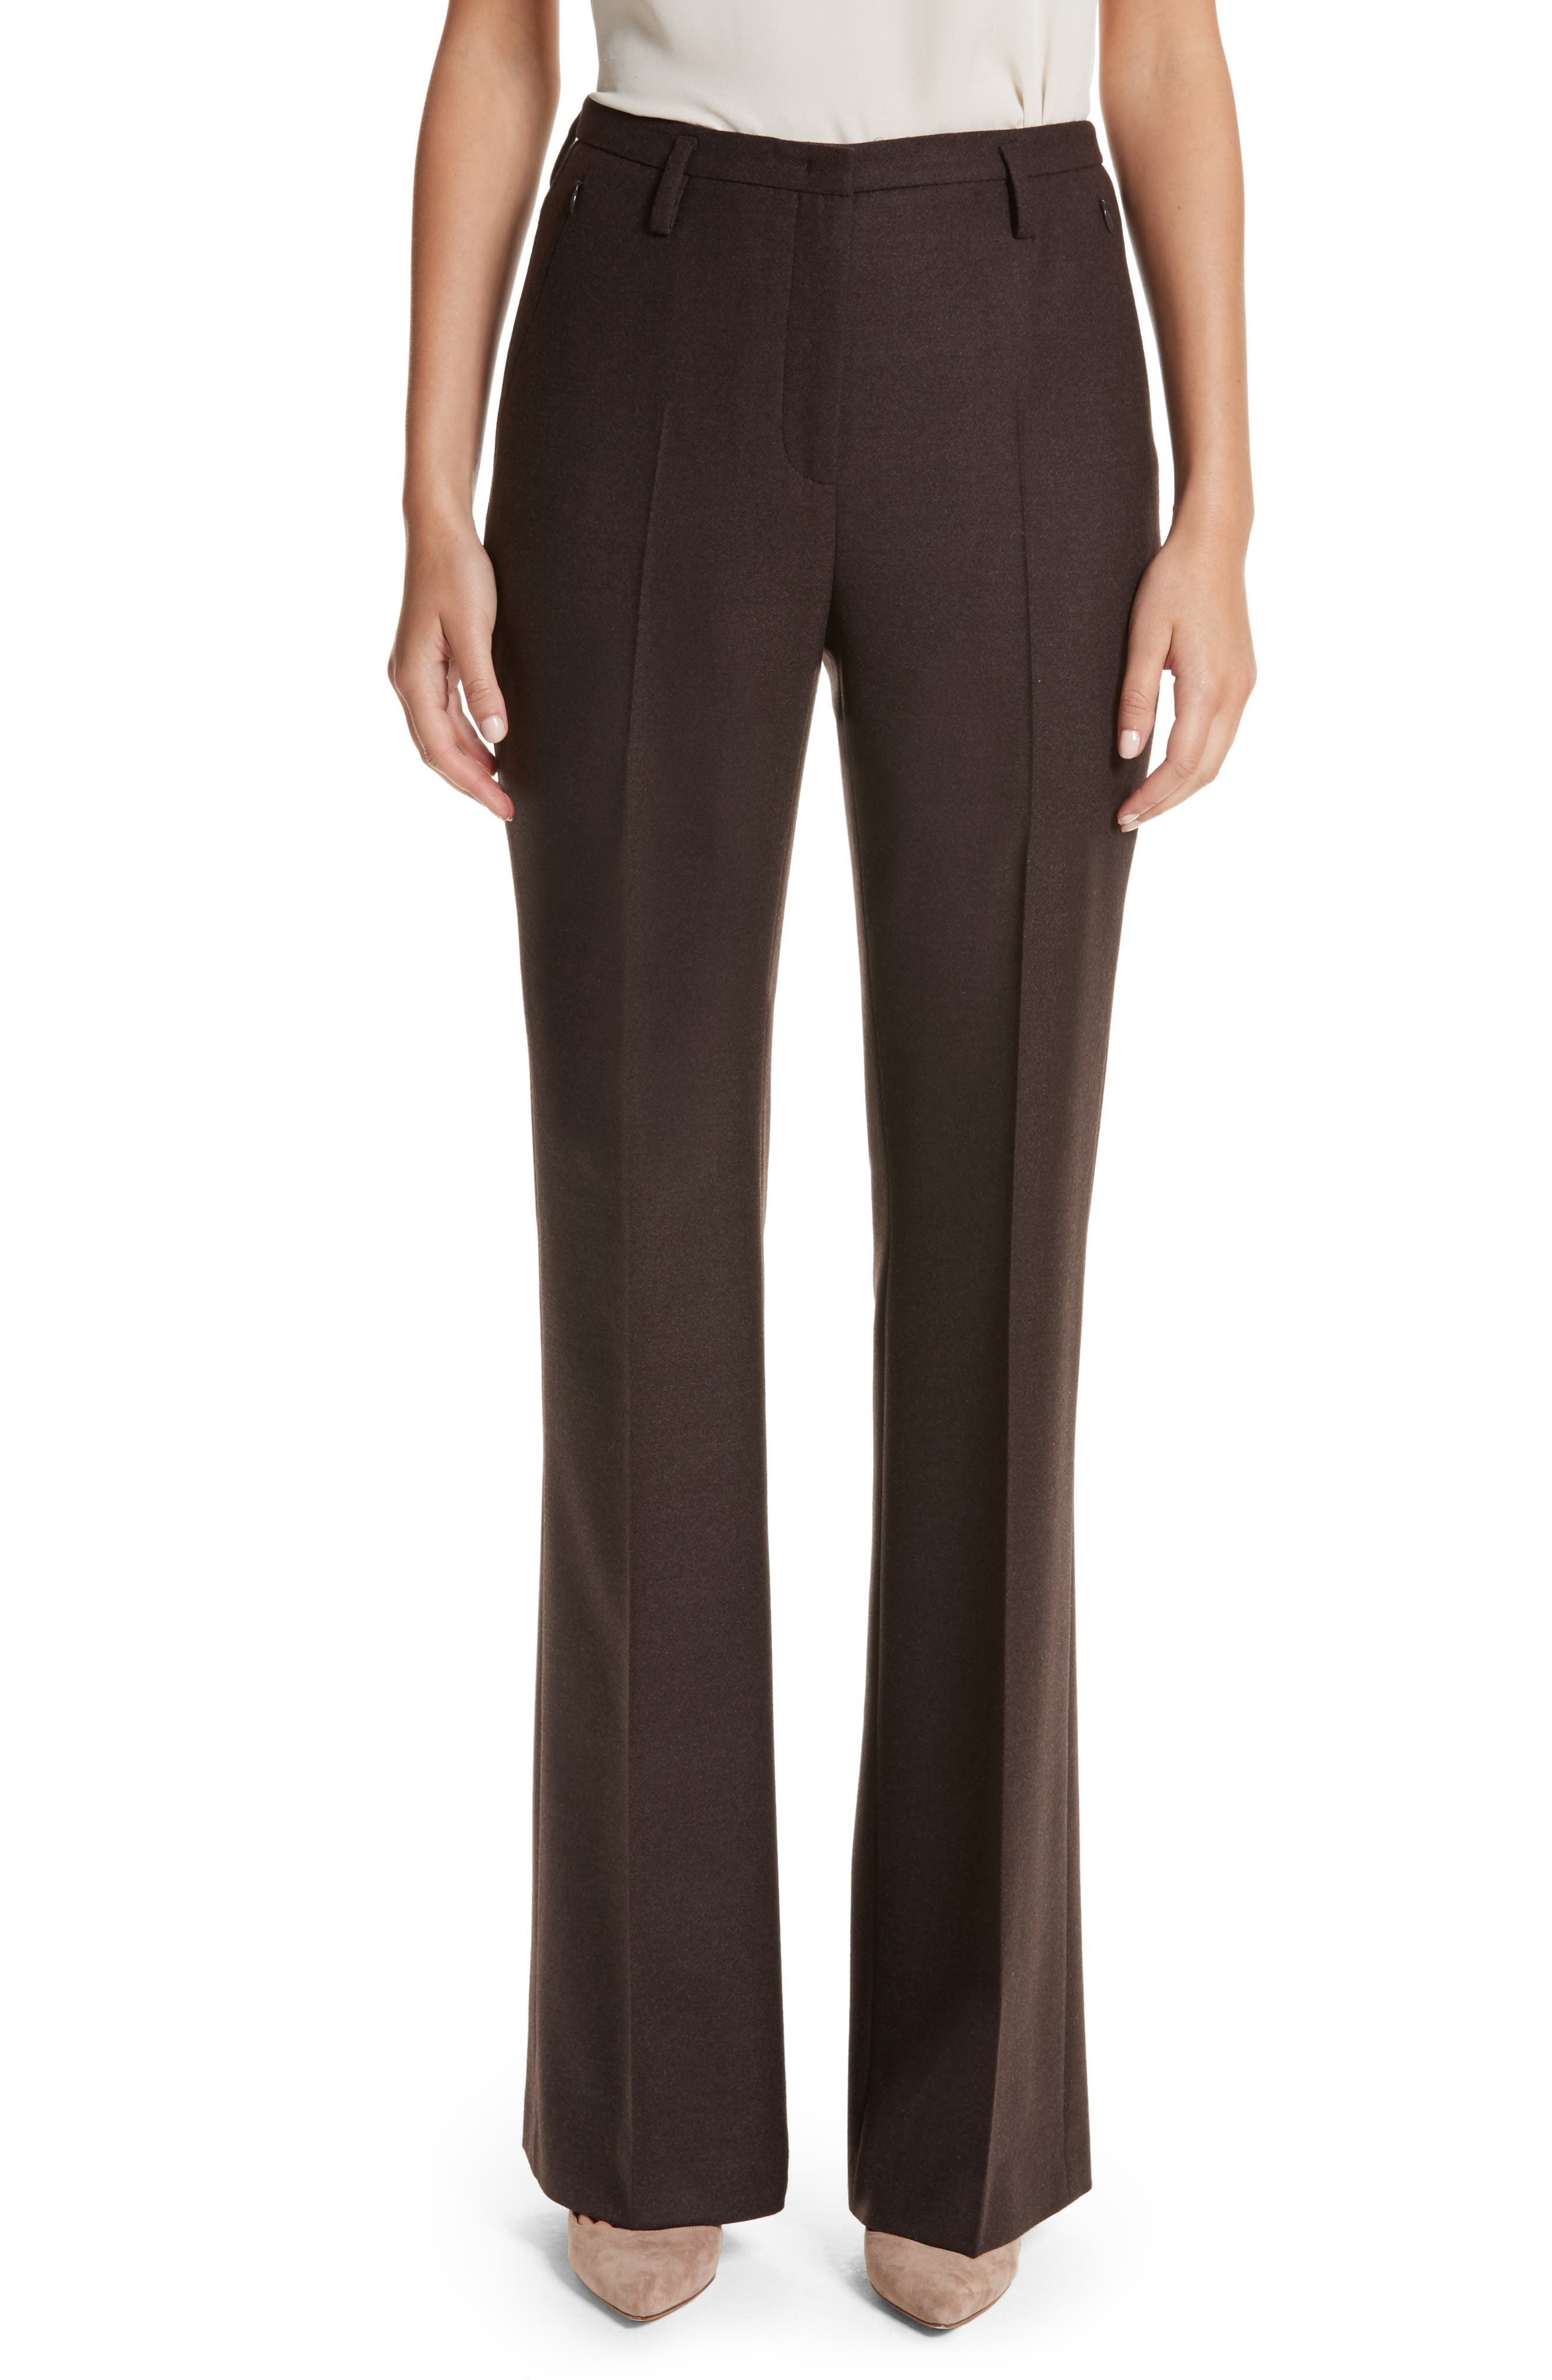 Farrah Stretch Wool Flare Pants,                             Main thumbnail 1, color,                             200